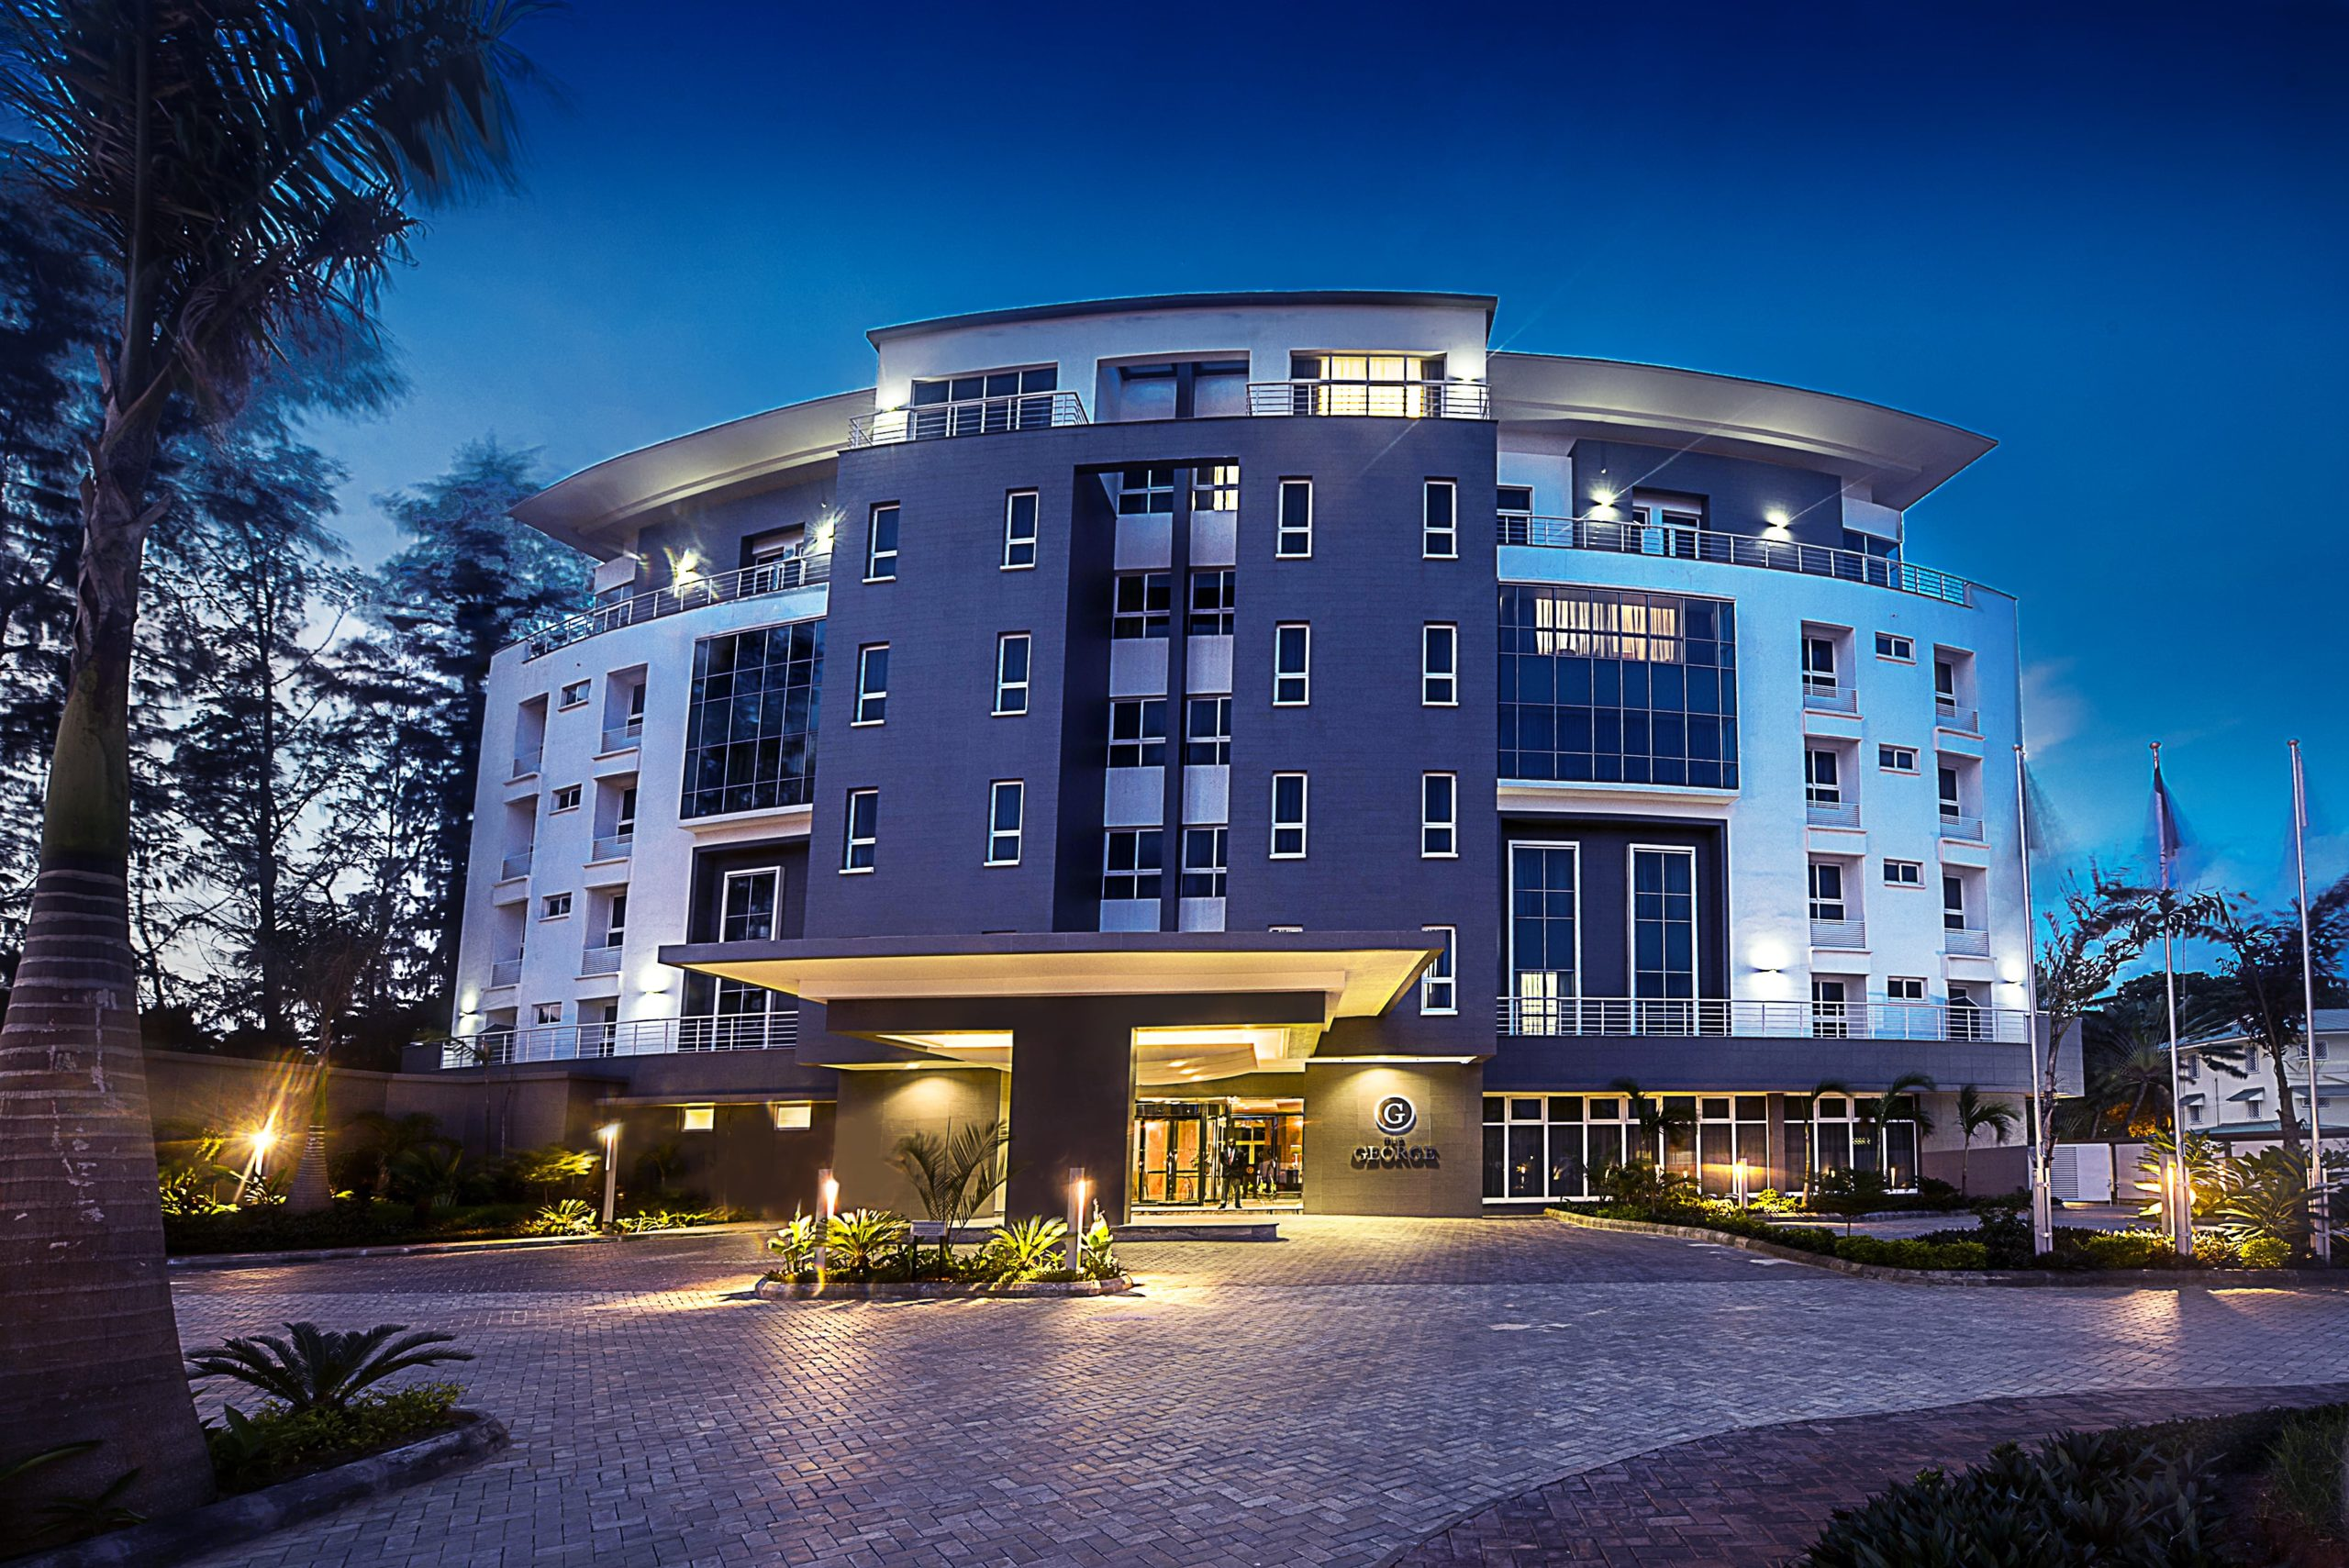 Top Hotels in Ikoyi